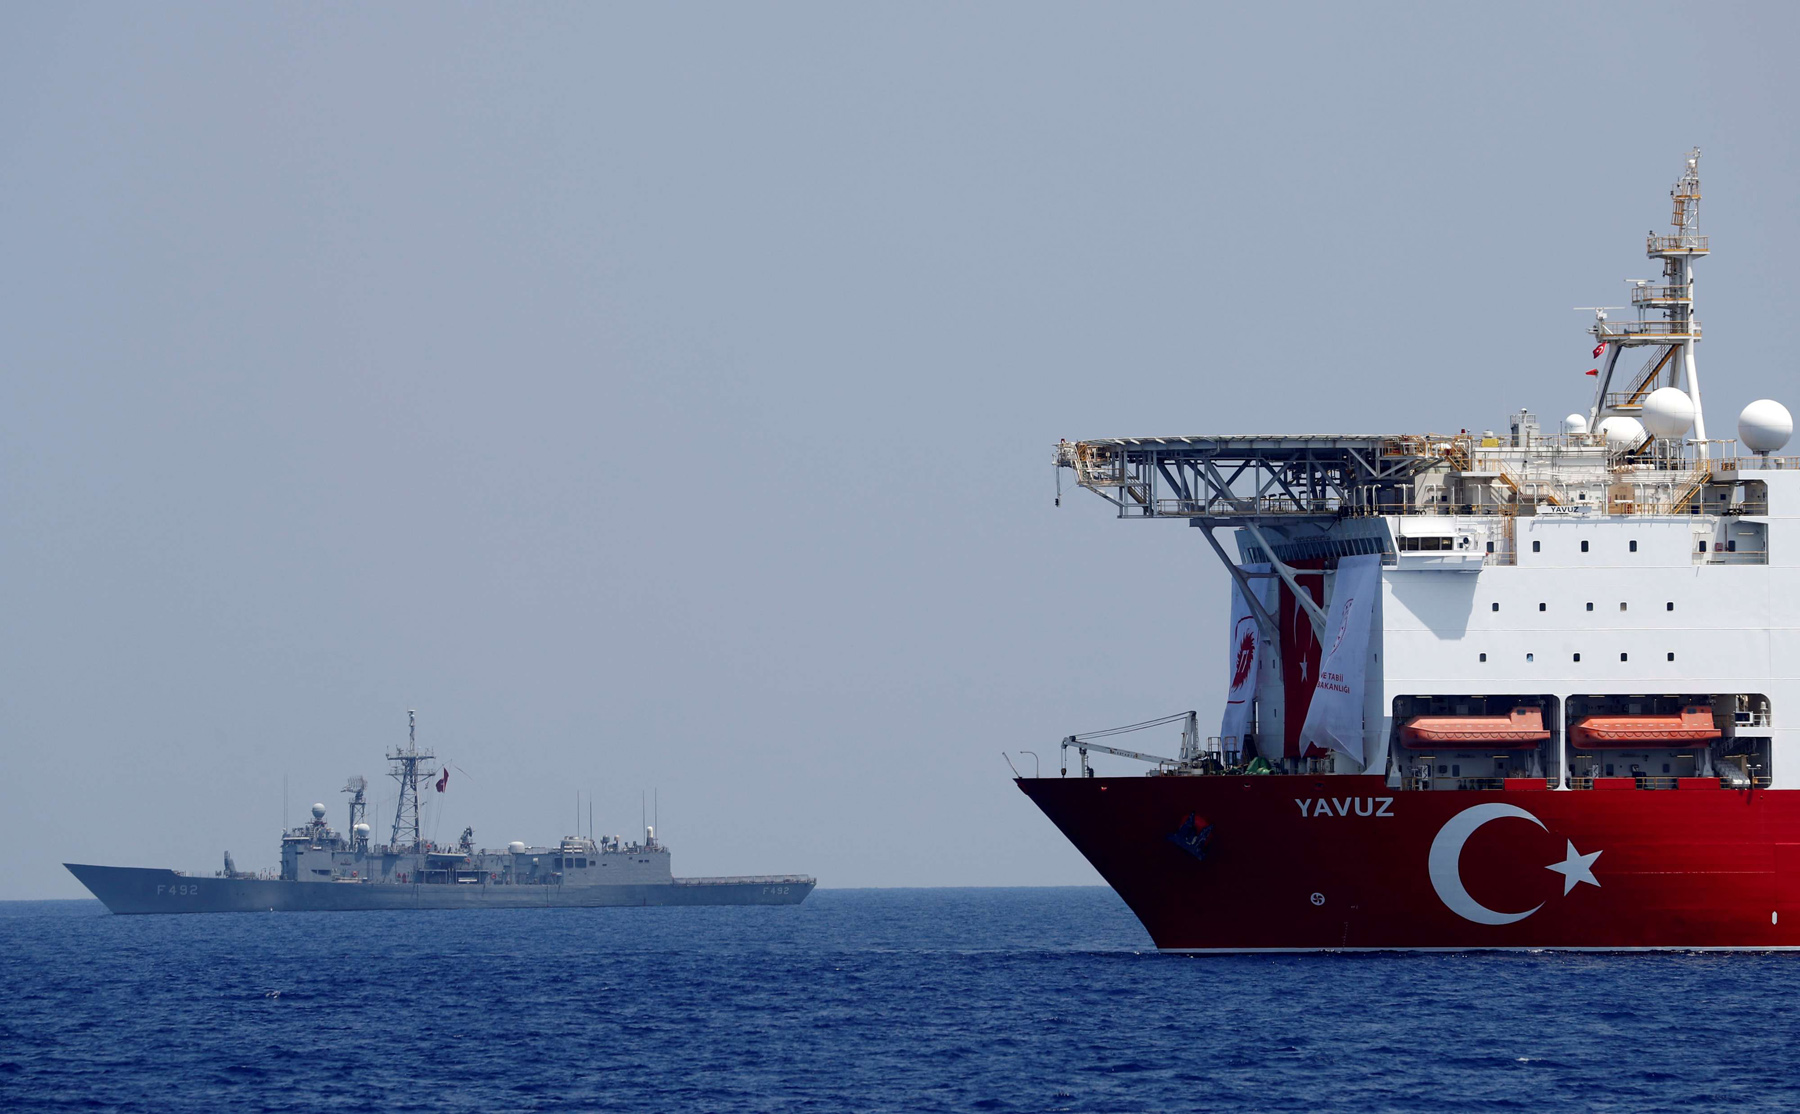 Turbulent waters. Turkish drilling vessel Yavuz is escorted by Turkish Navy frigate TCG Gemlik (F-492) in the eastern Mediterranean Sea off Cyprus. (Reuters)